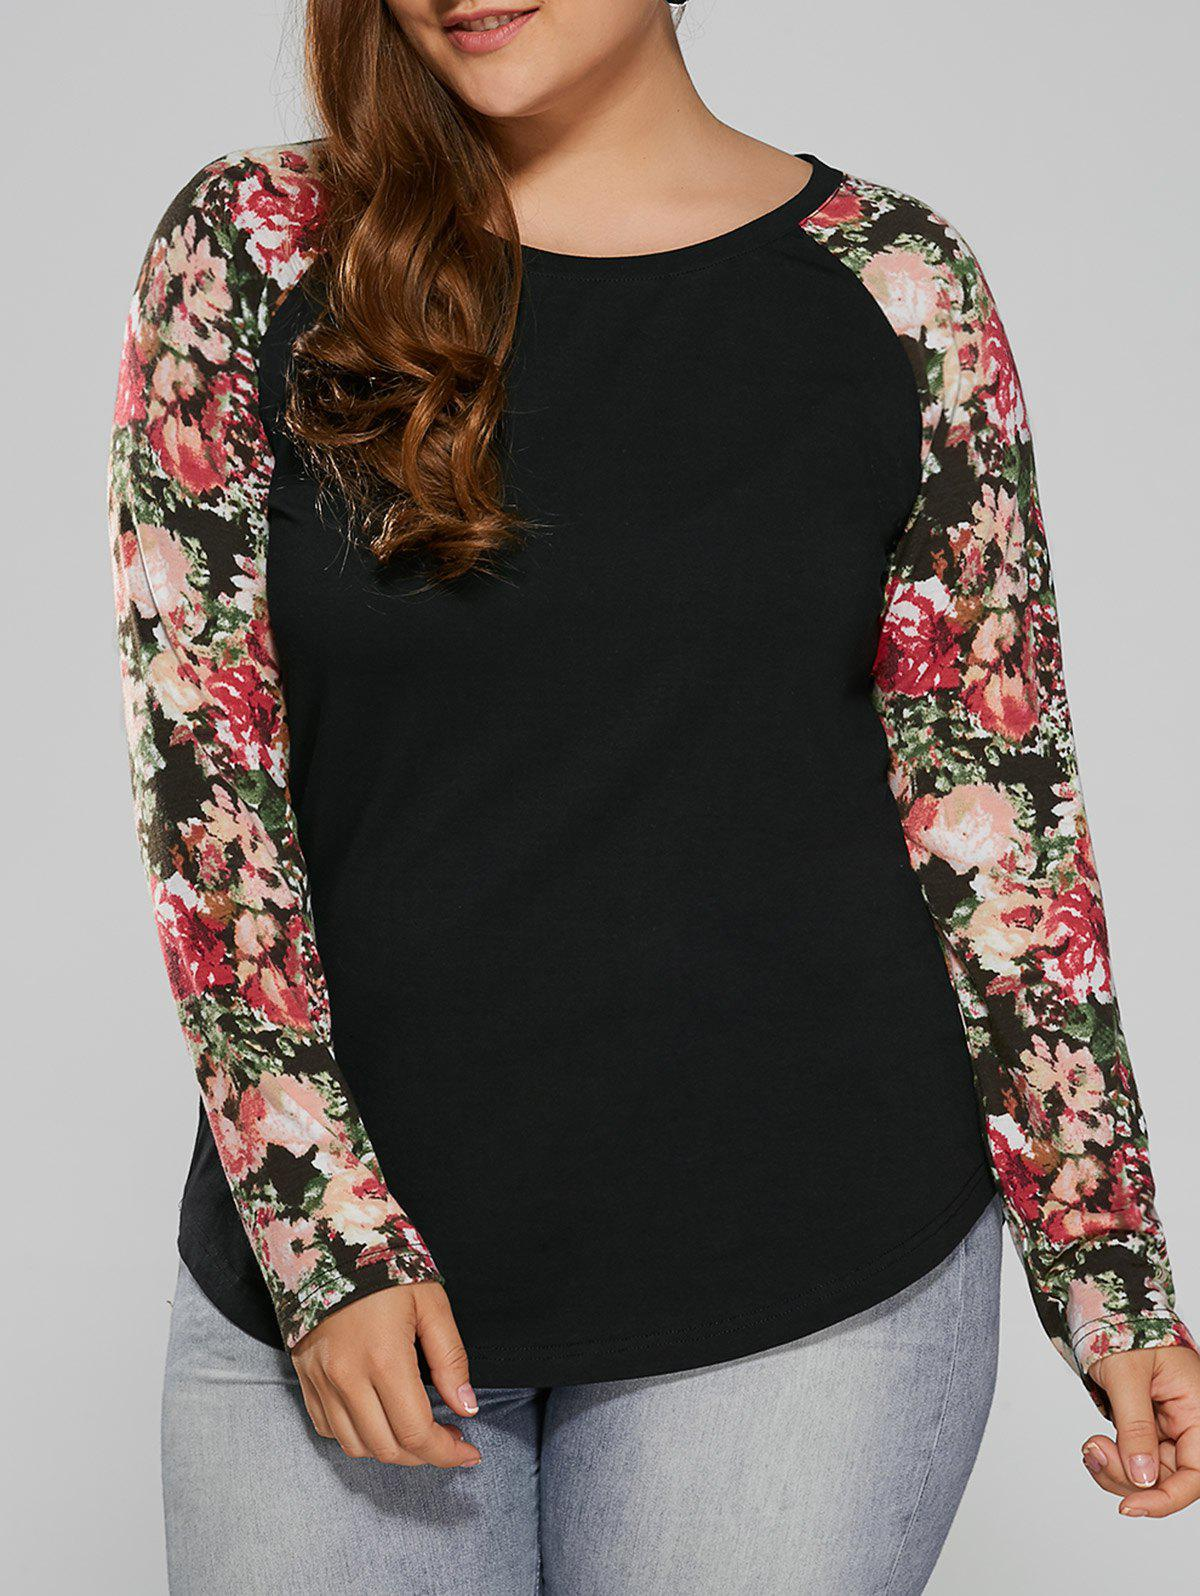 Plus Size Floral Raglan Full Sleeve T-ShirtWOMEN<br><br>Size: 2XL; Color: BLACK; Material: Cotton Blends,Polyester; Shirt Length: Long; Sleeve Length: Full; Collar: Round Neck; Style: Casual; Season: Fall,Spring; Pattern Type: Floral; Weight: 0.370kg; Package Contents: 1 x T-Shirt;